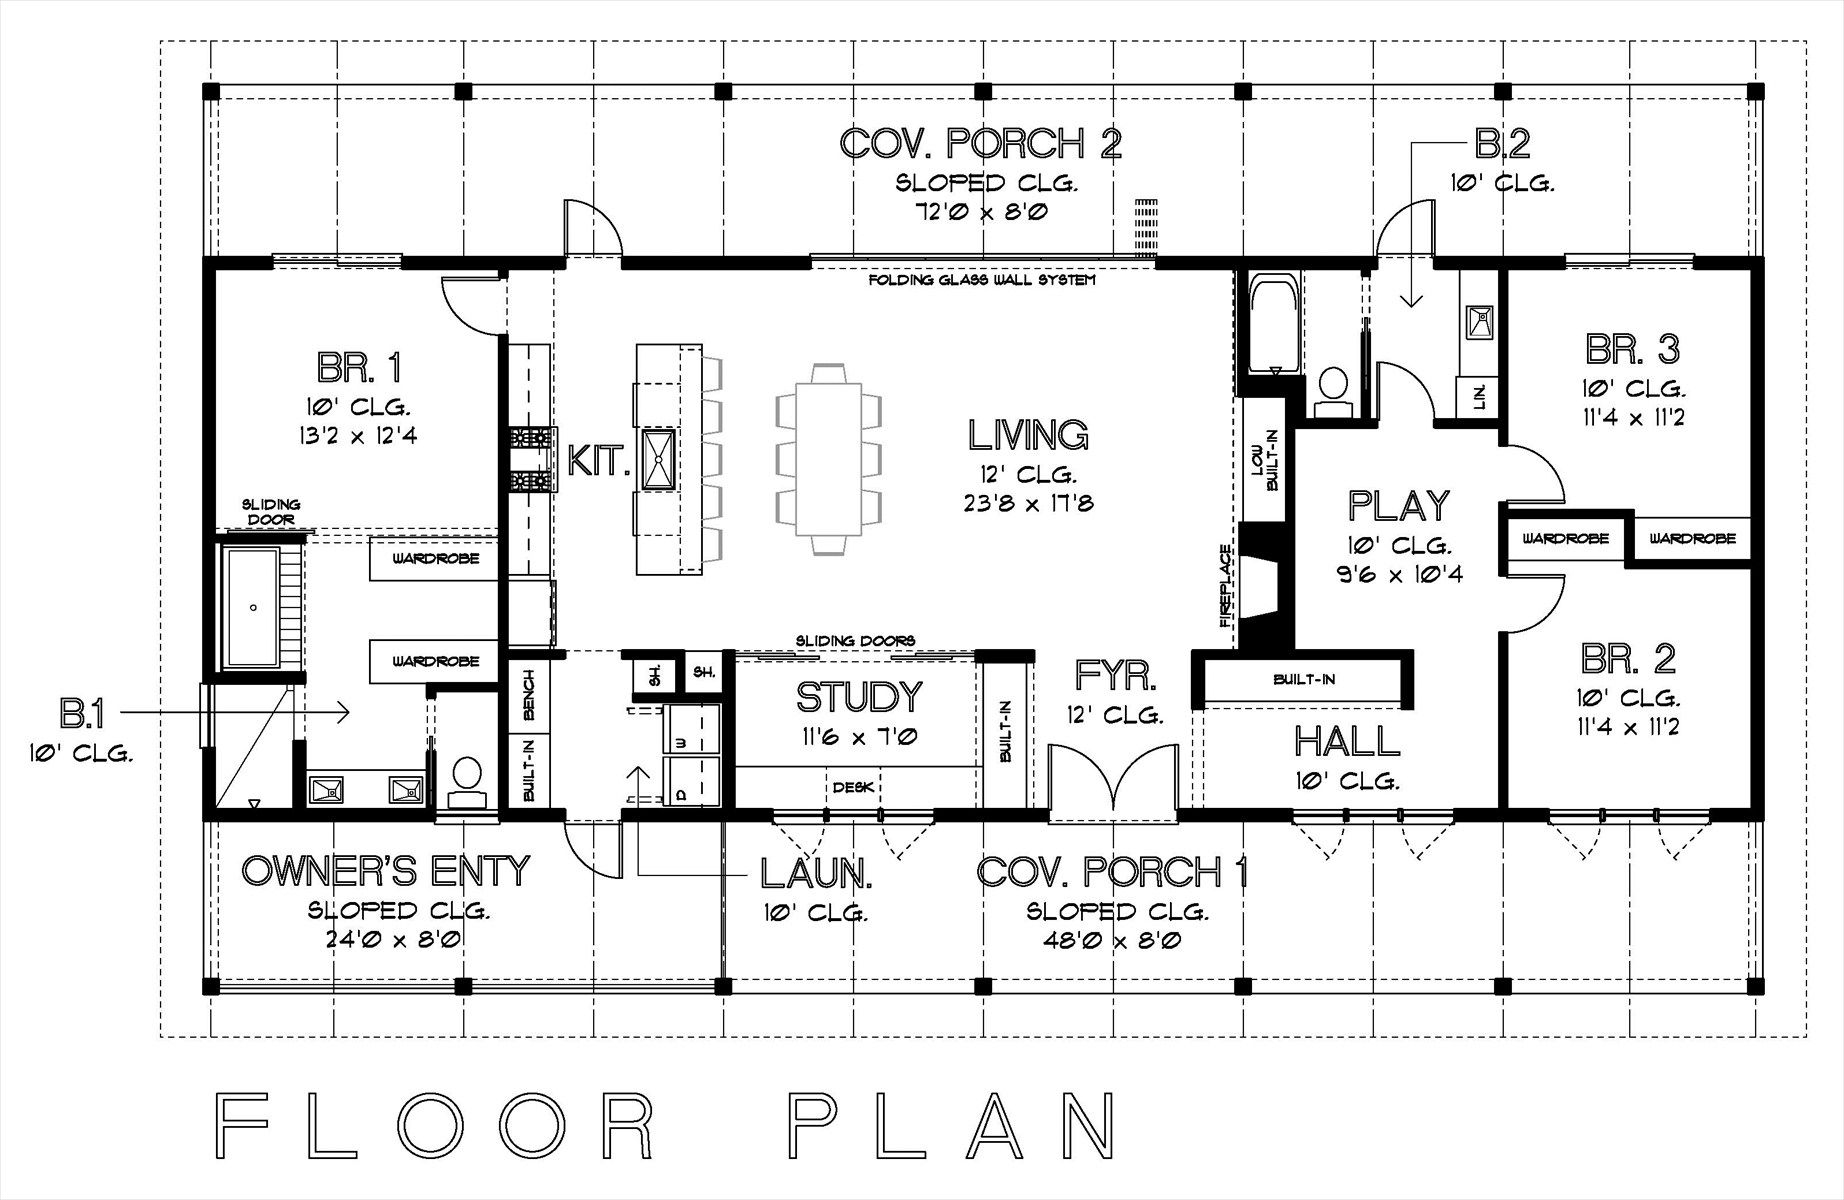 17 Best 1000 images about AN house plans on Pinterest Lsu Ranch